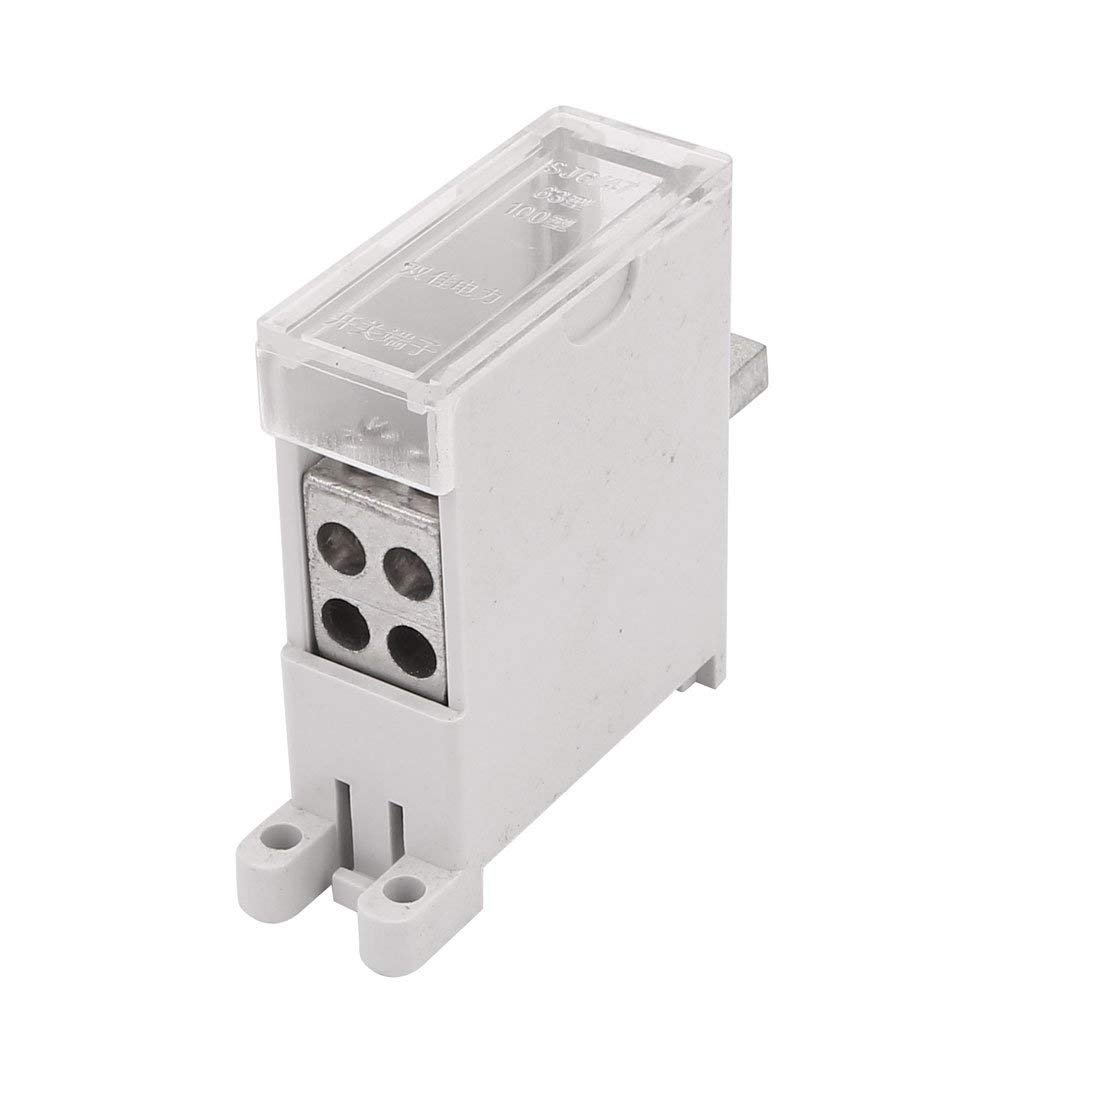 uxcell DZ47 Switch Terminal Wire Barrier Block 1 Inlet 4 Outlet for Miniature Circuit Breakers